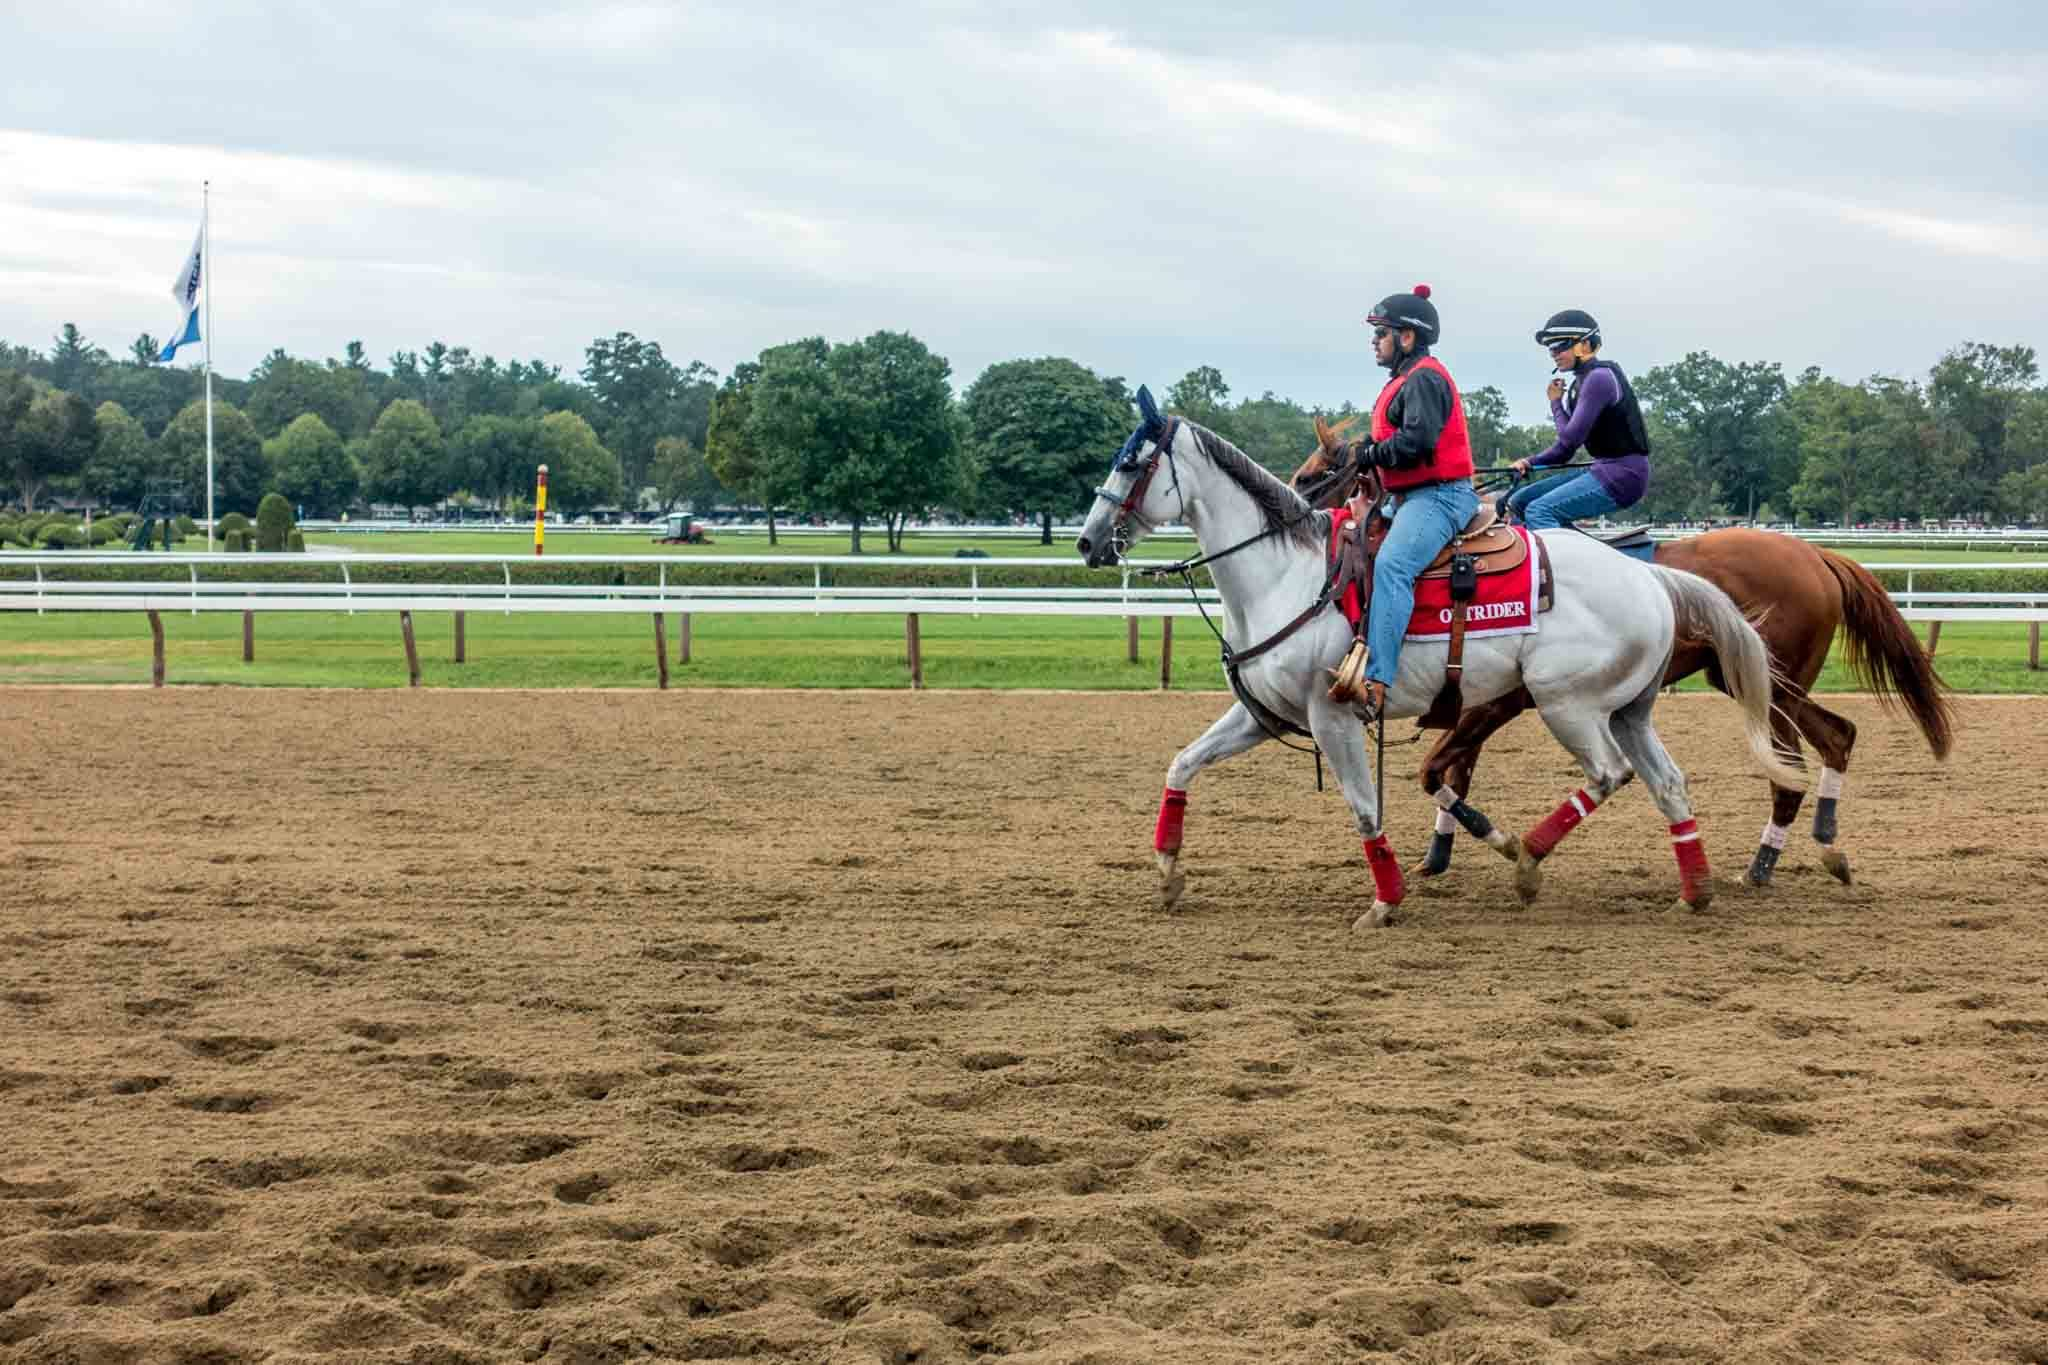 Horses and jockeys warming up at Saratoga Springs racetrack